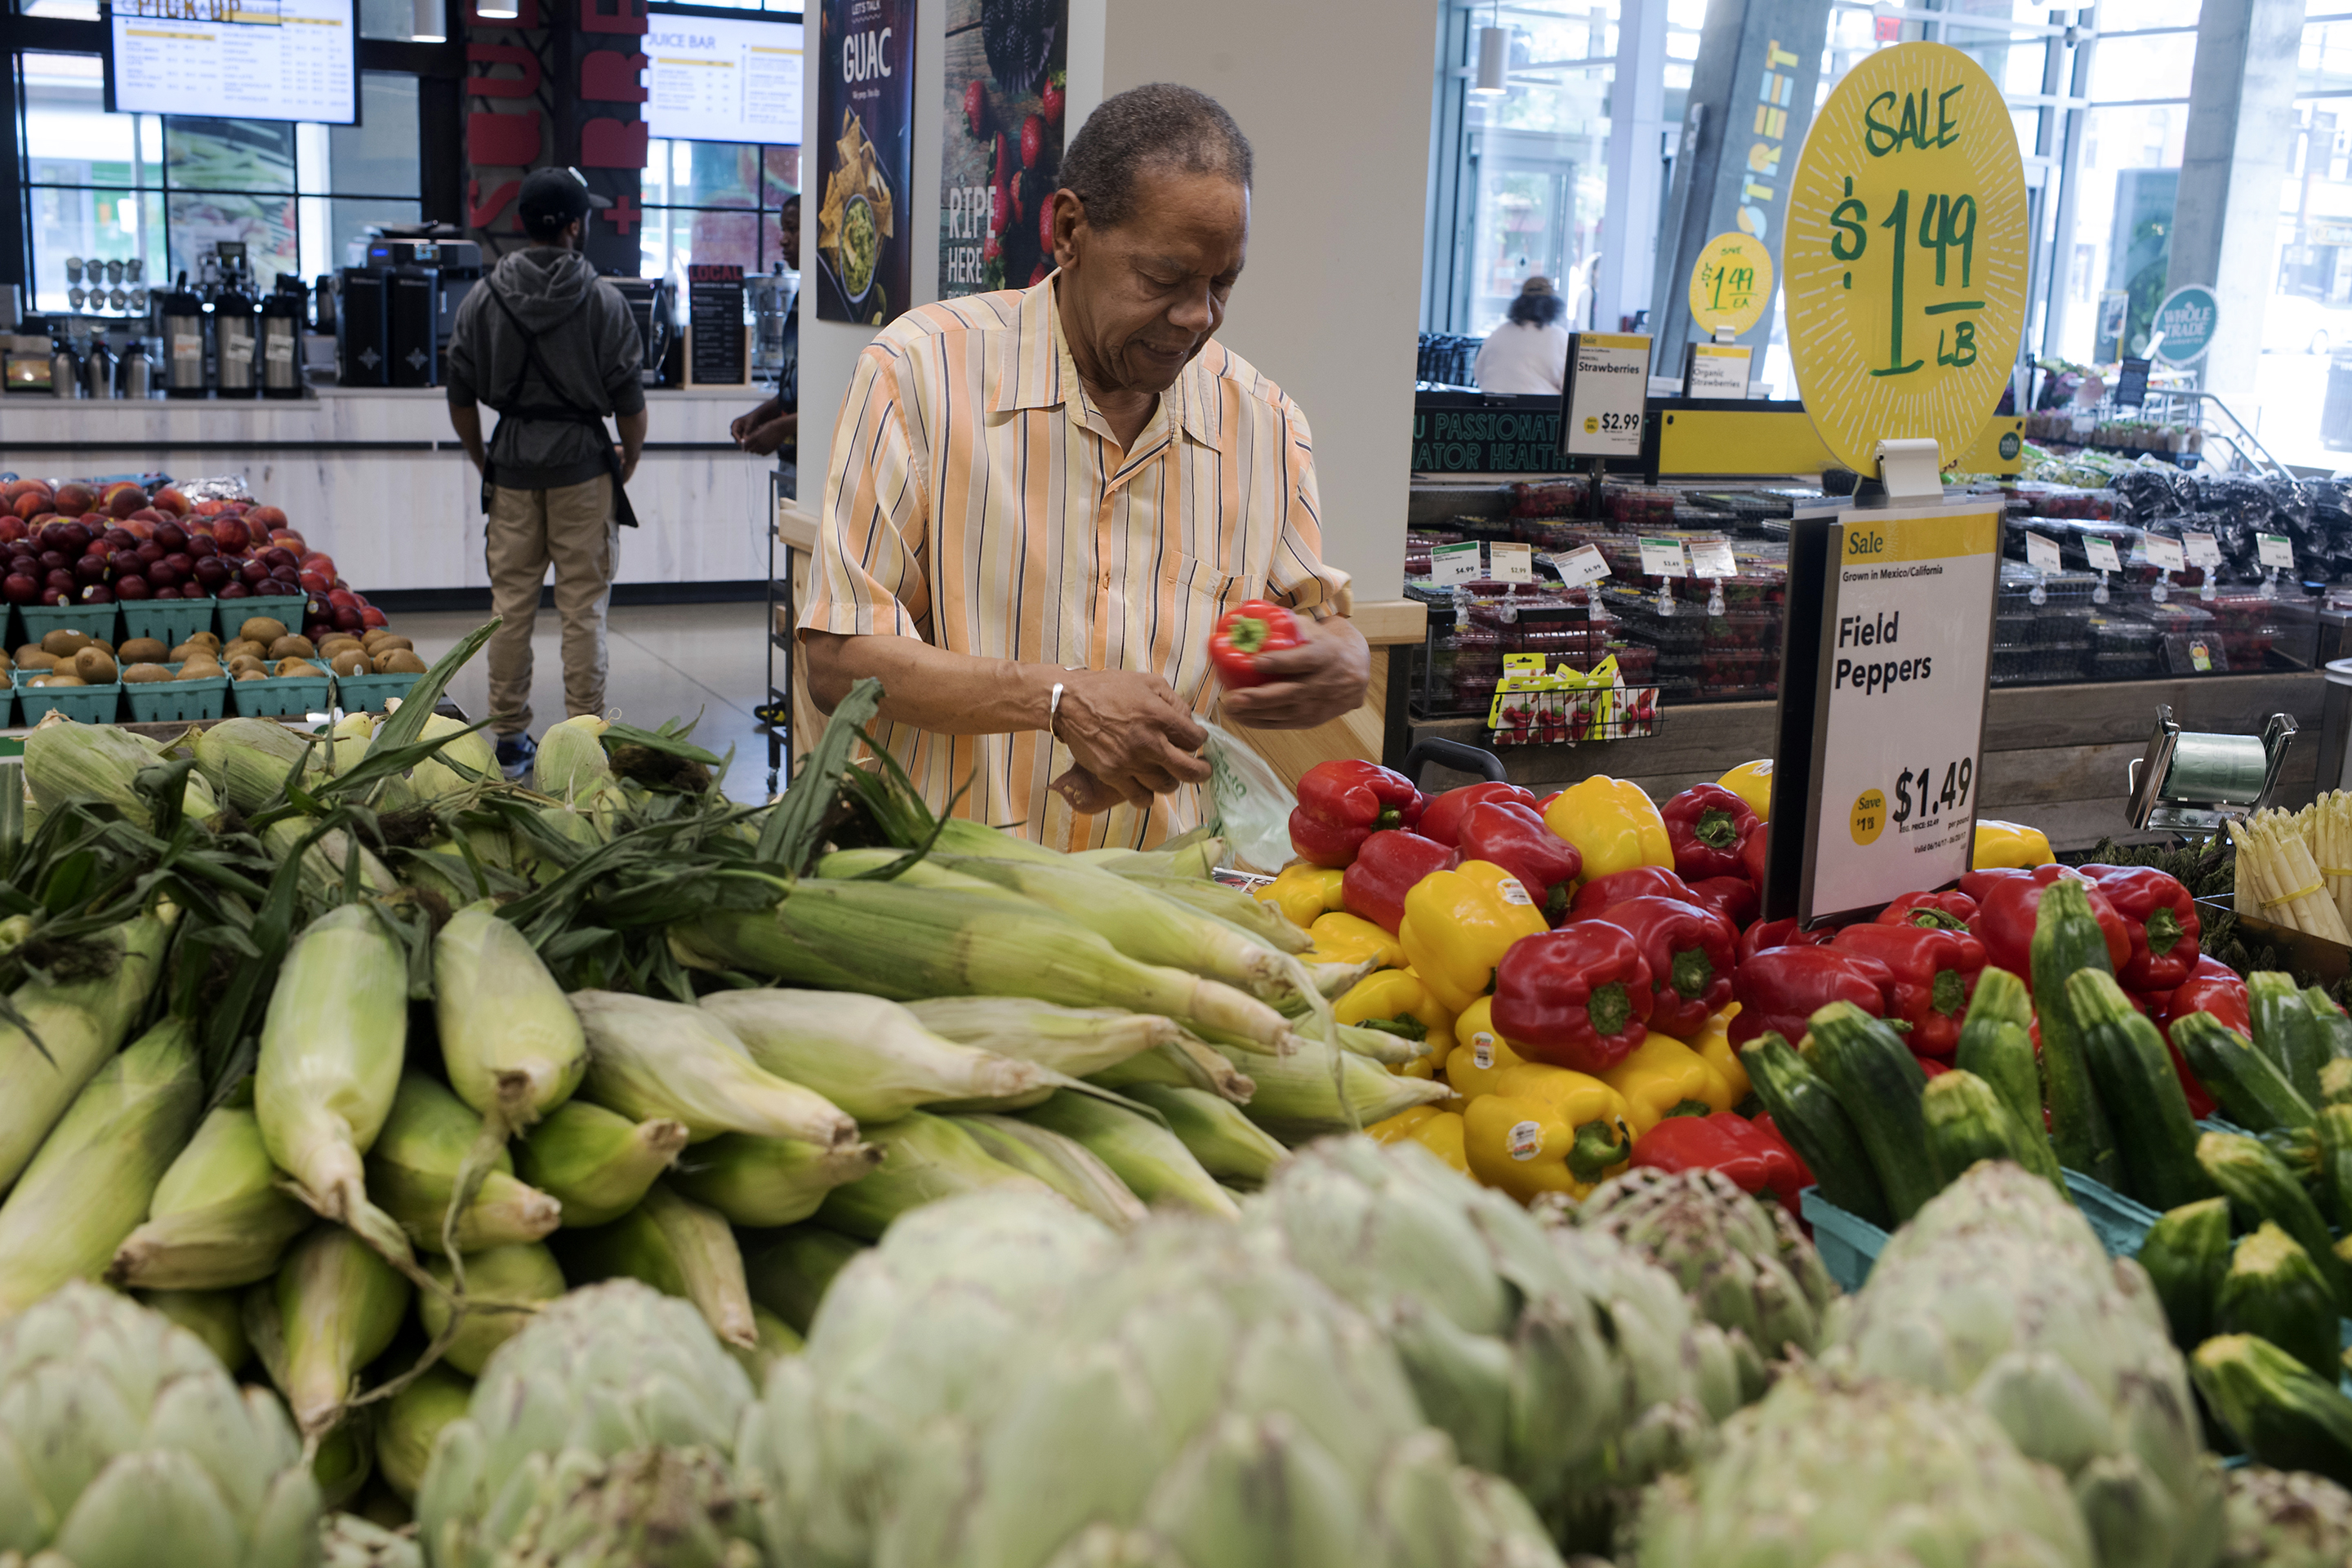 Whole Foods Cutting Prices, Adding More Amazon Prime Deals   Fortune